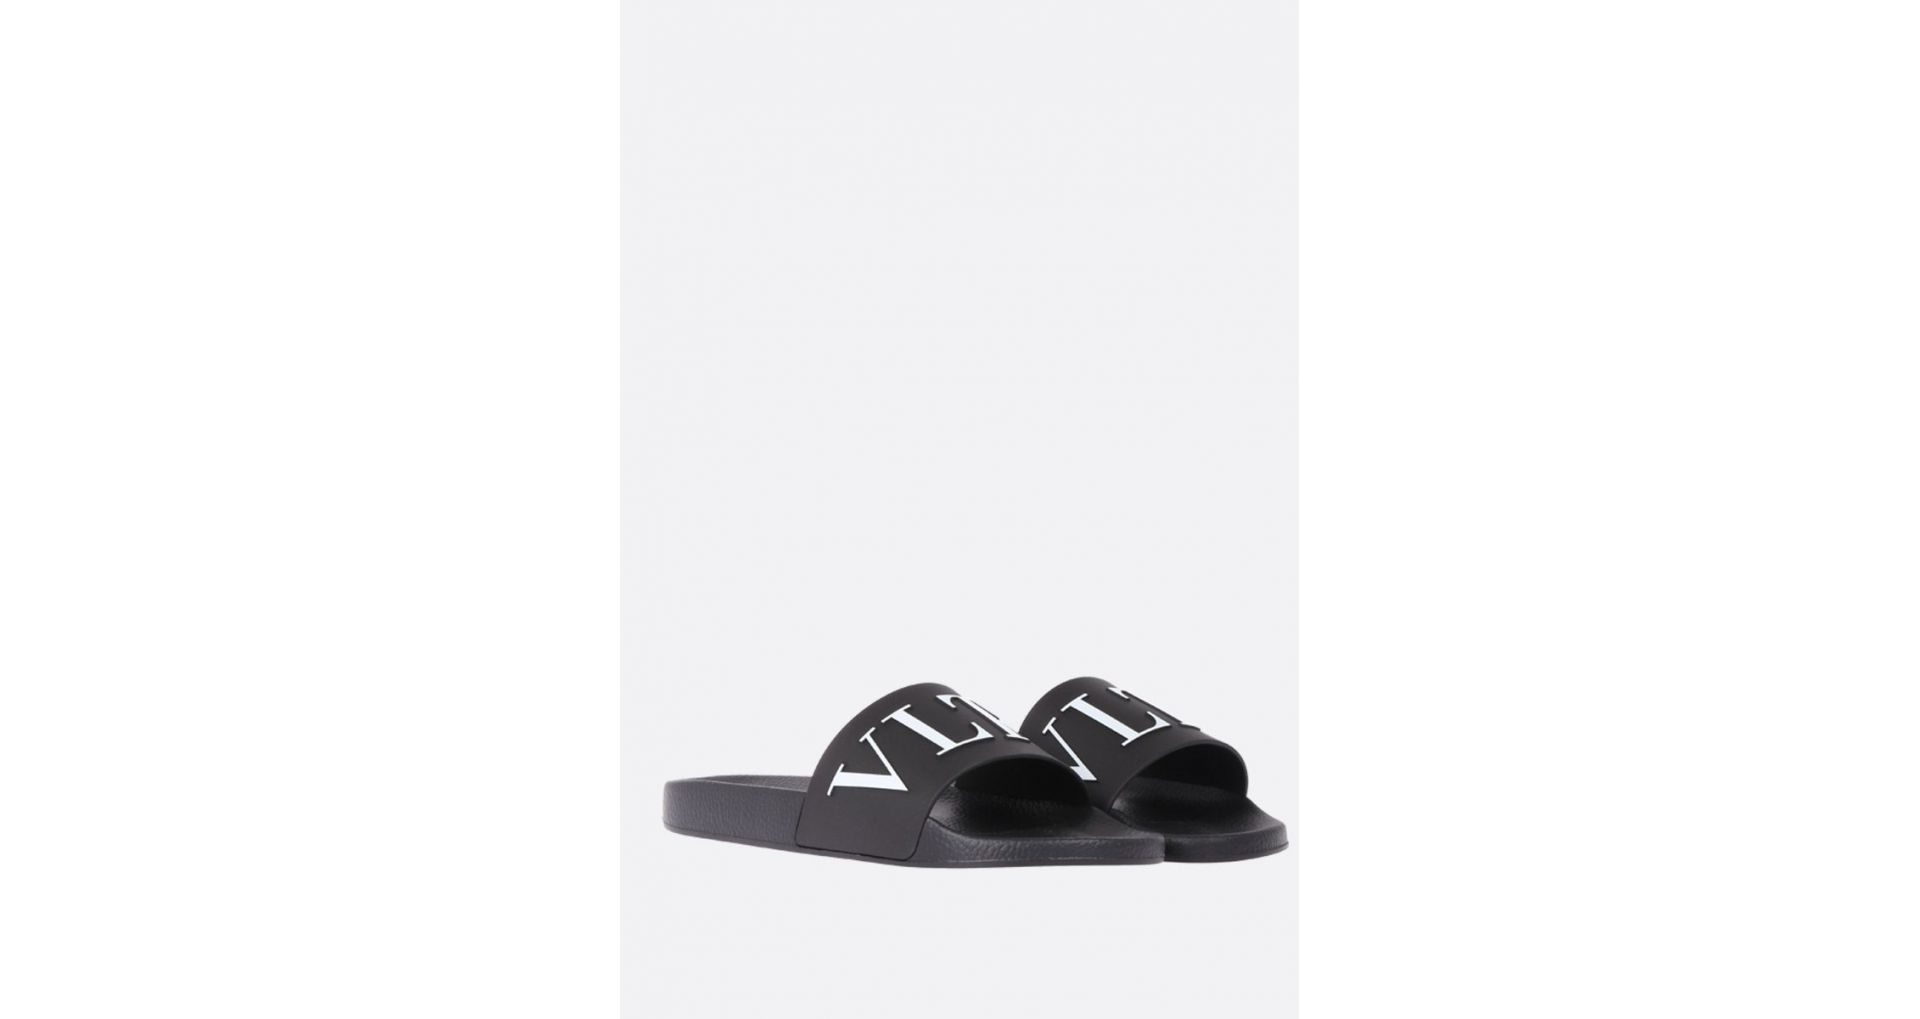 Fashion slides, beach flip flops, home slippers, street slides